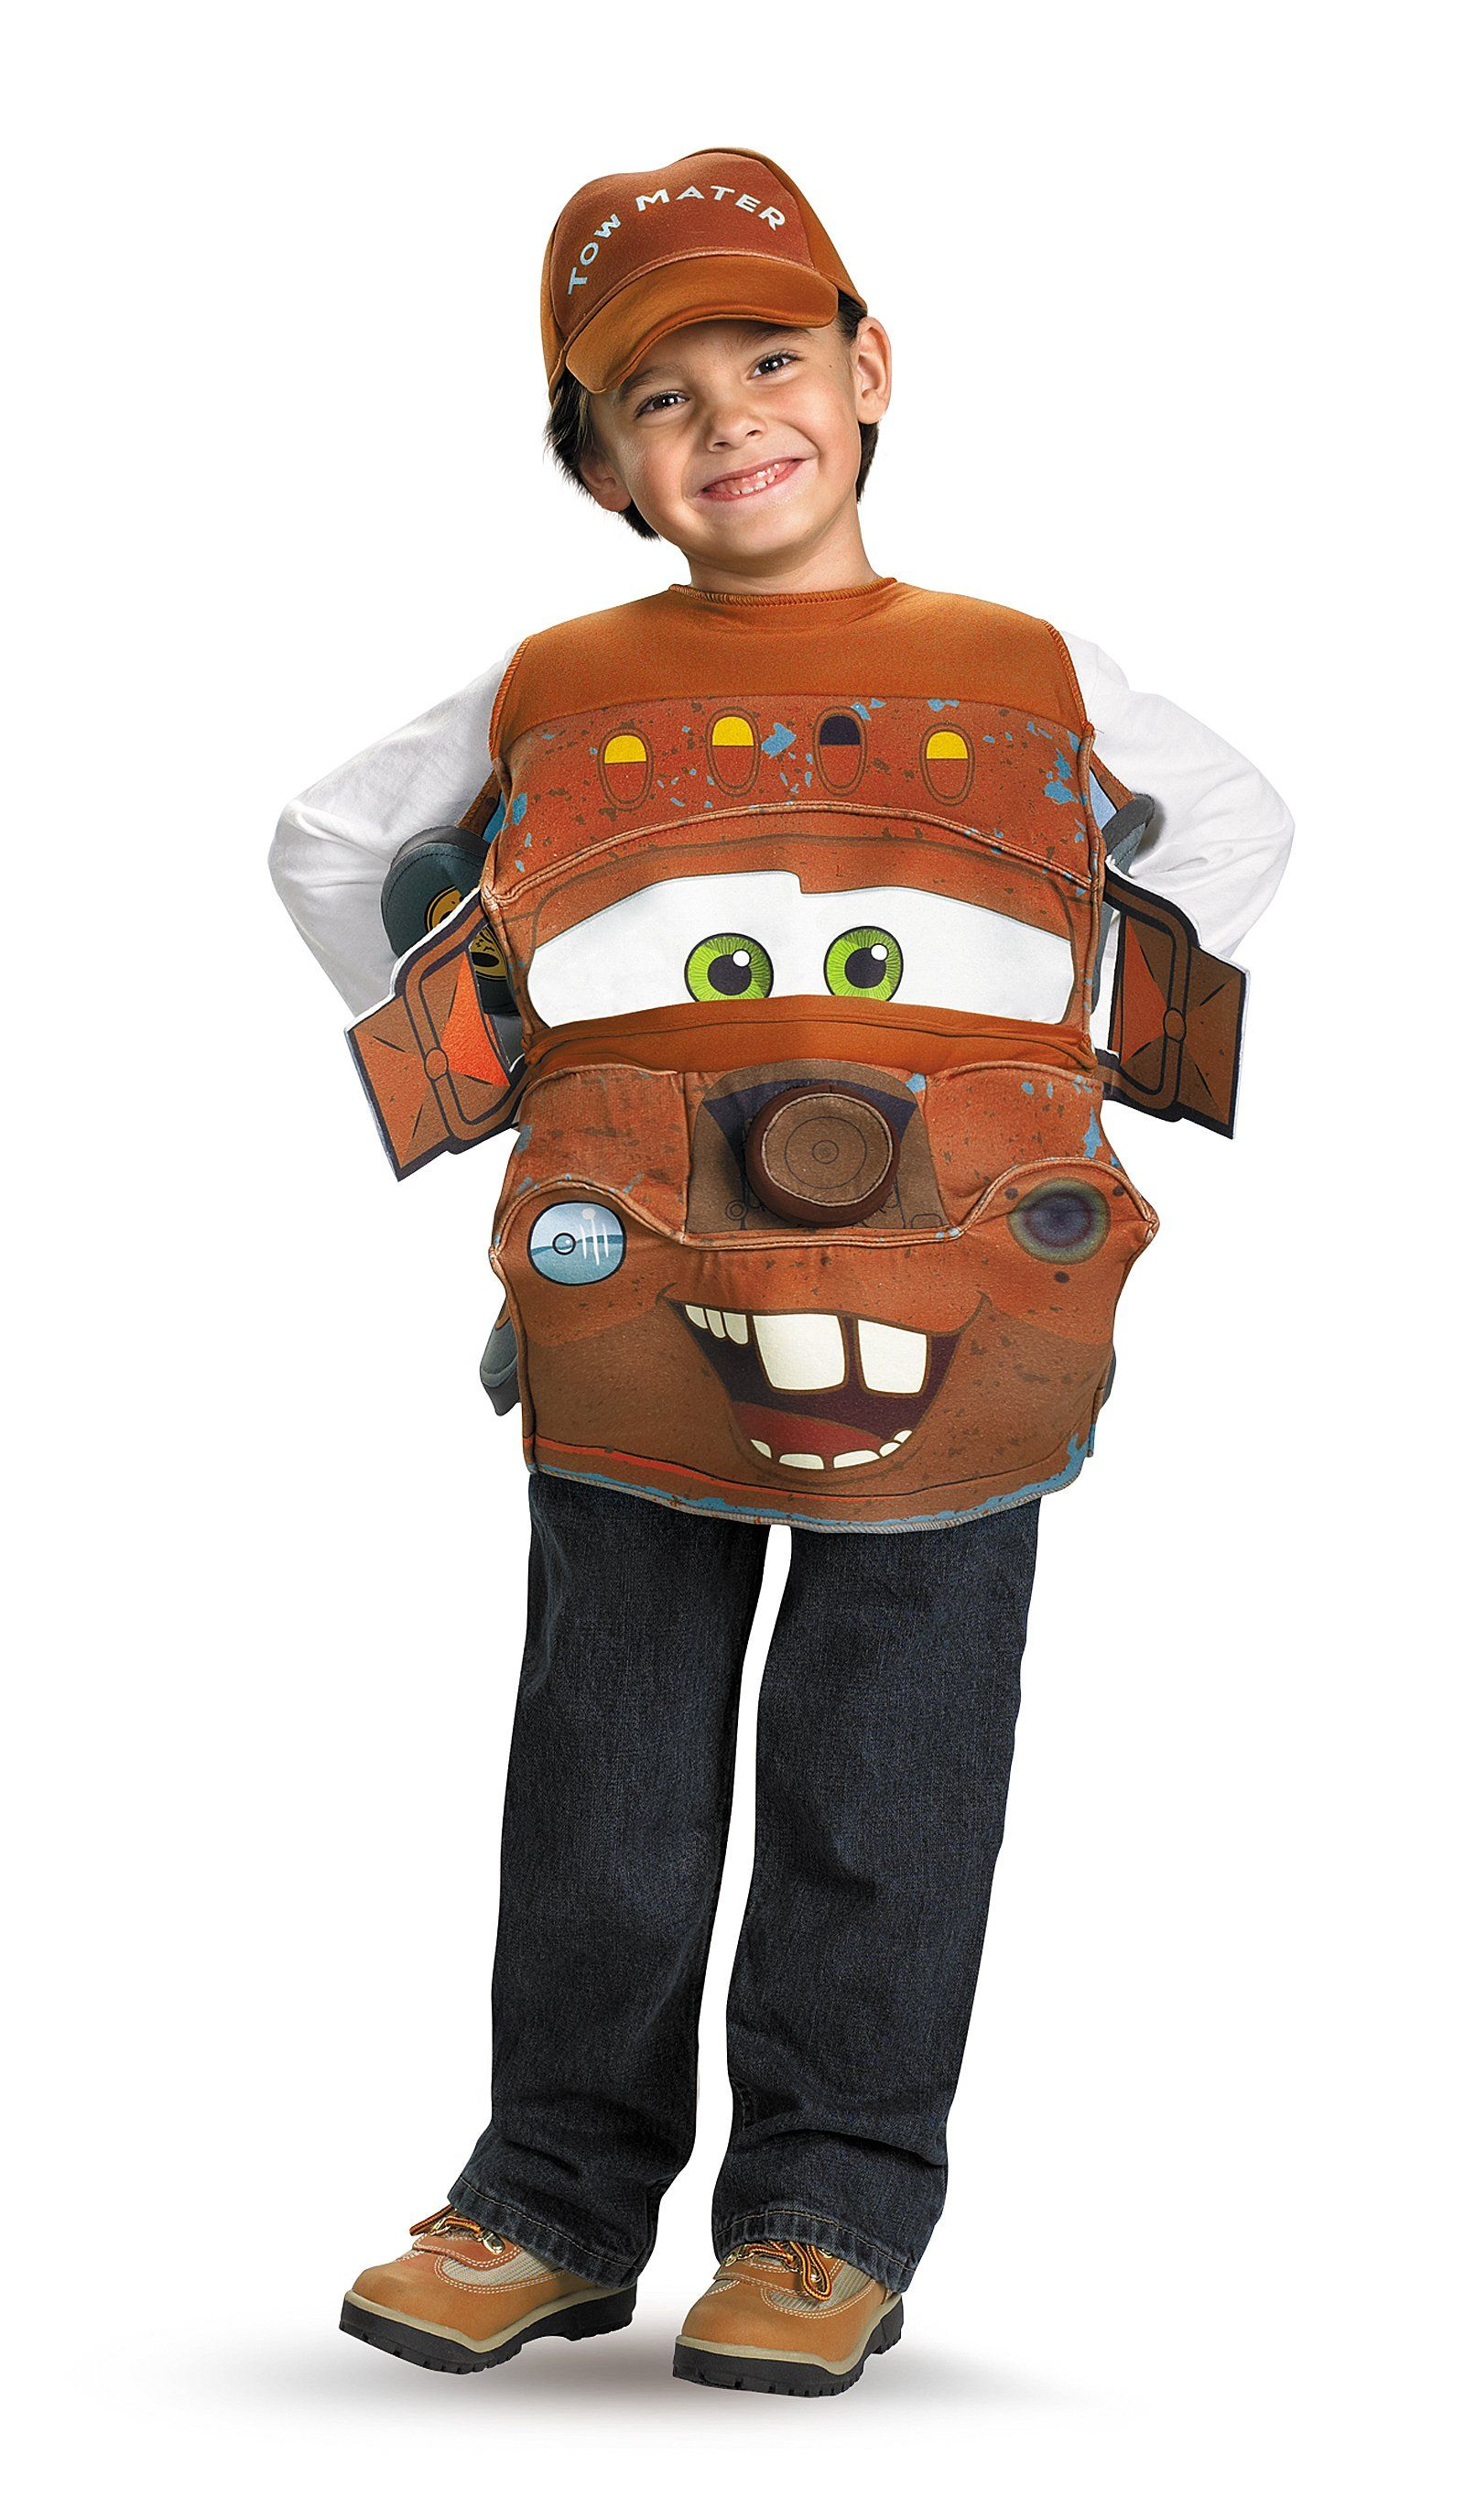 Cars 2 Mater Deluxe Child Costume In 2019 Home Art Painting